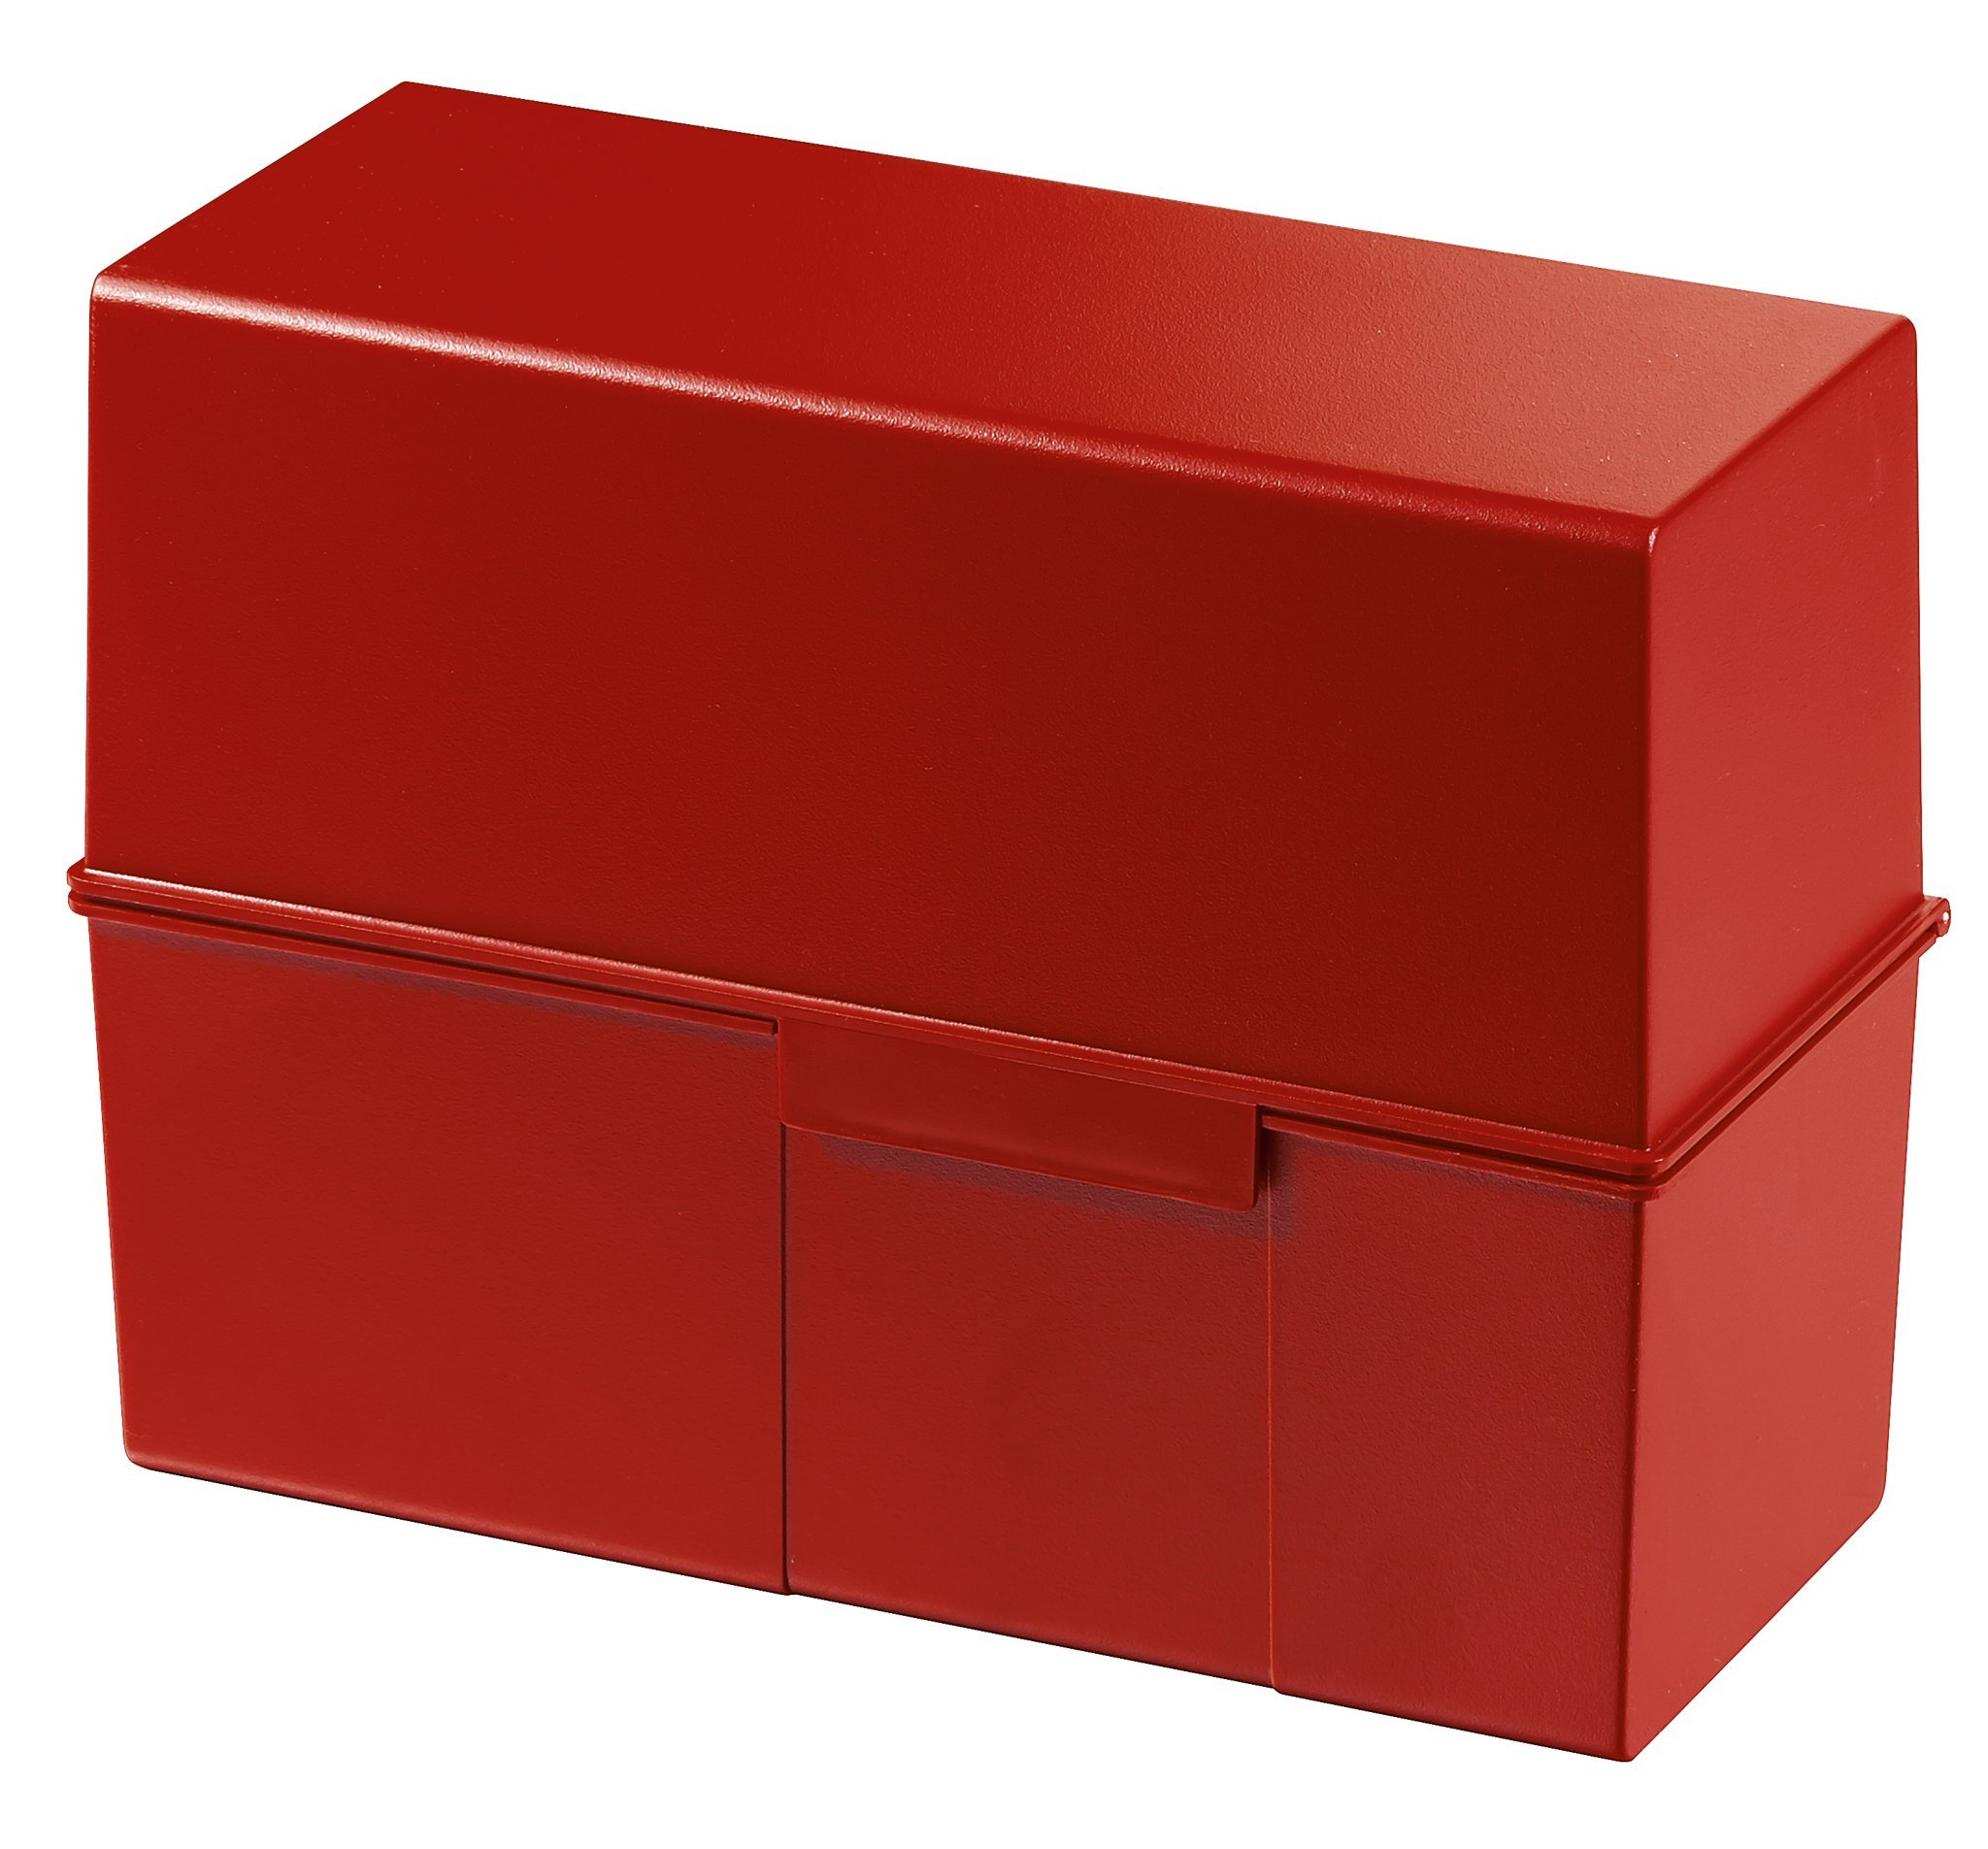 HAN 975-17 Index Card Box For 450 Cards Din A5 Polystyrene 228 X 171 X 102 Mm Red by HAN